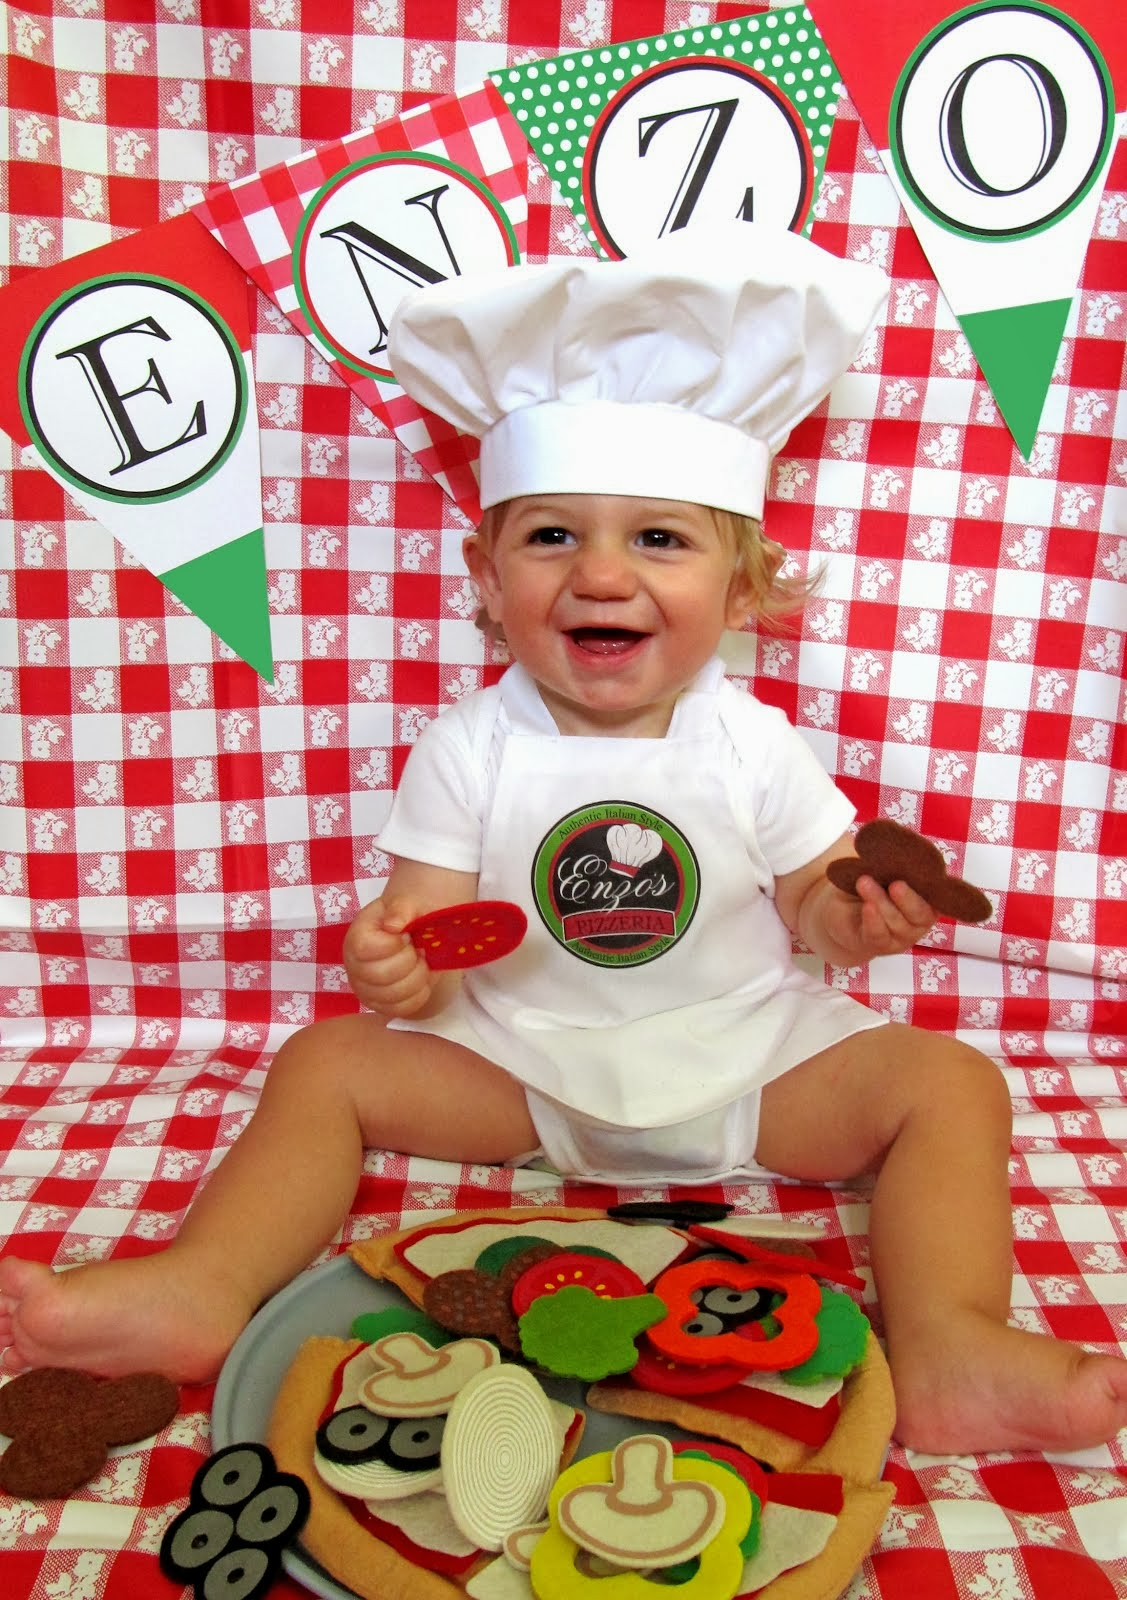 Enzo's Italian Pizzeria 1st Birthday  Party